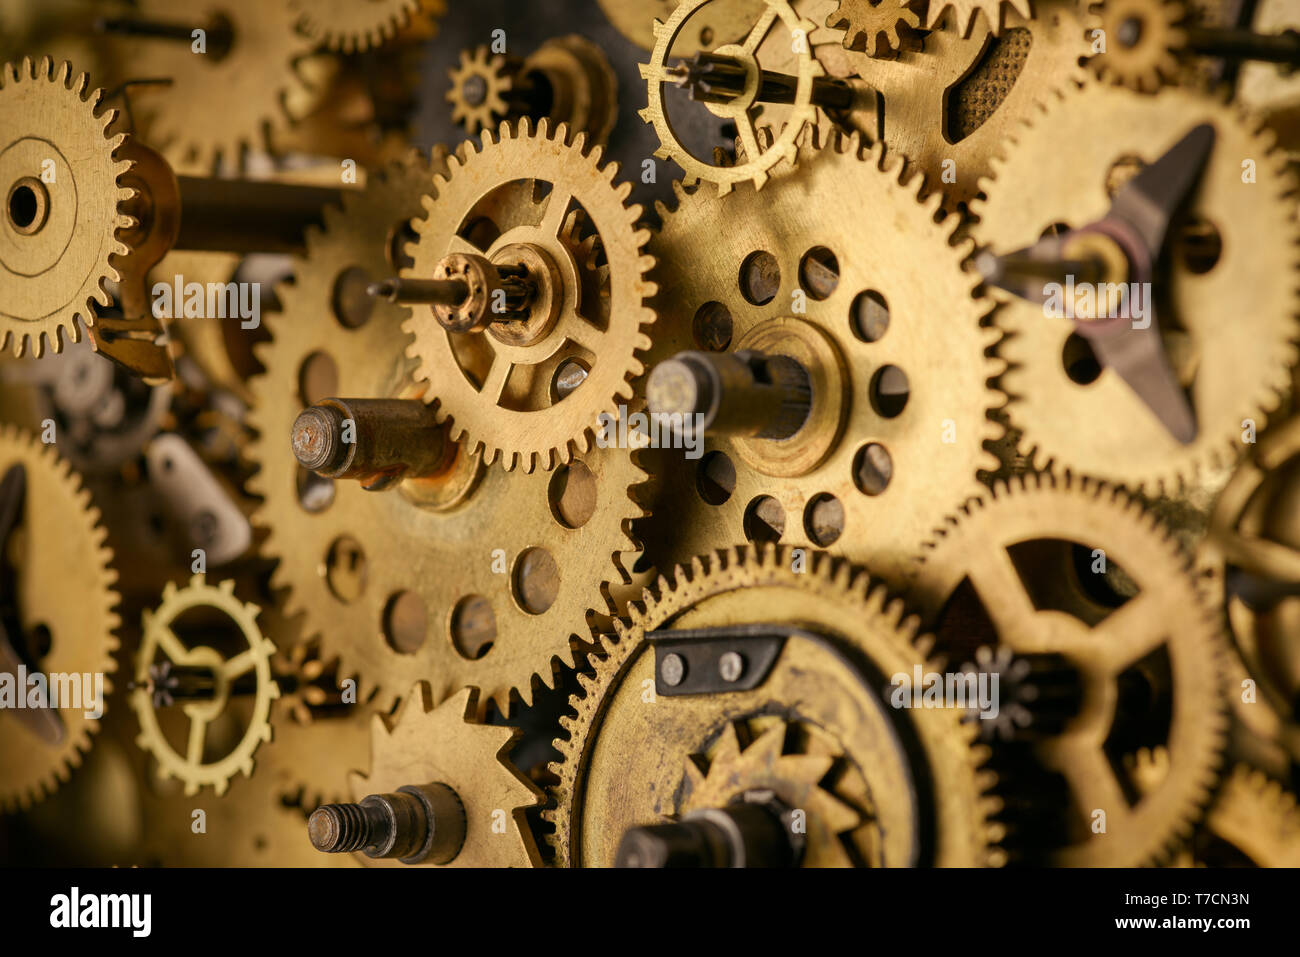 Gears and cogs macro in vintage old mechanism - Stock Image